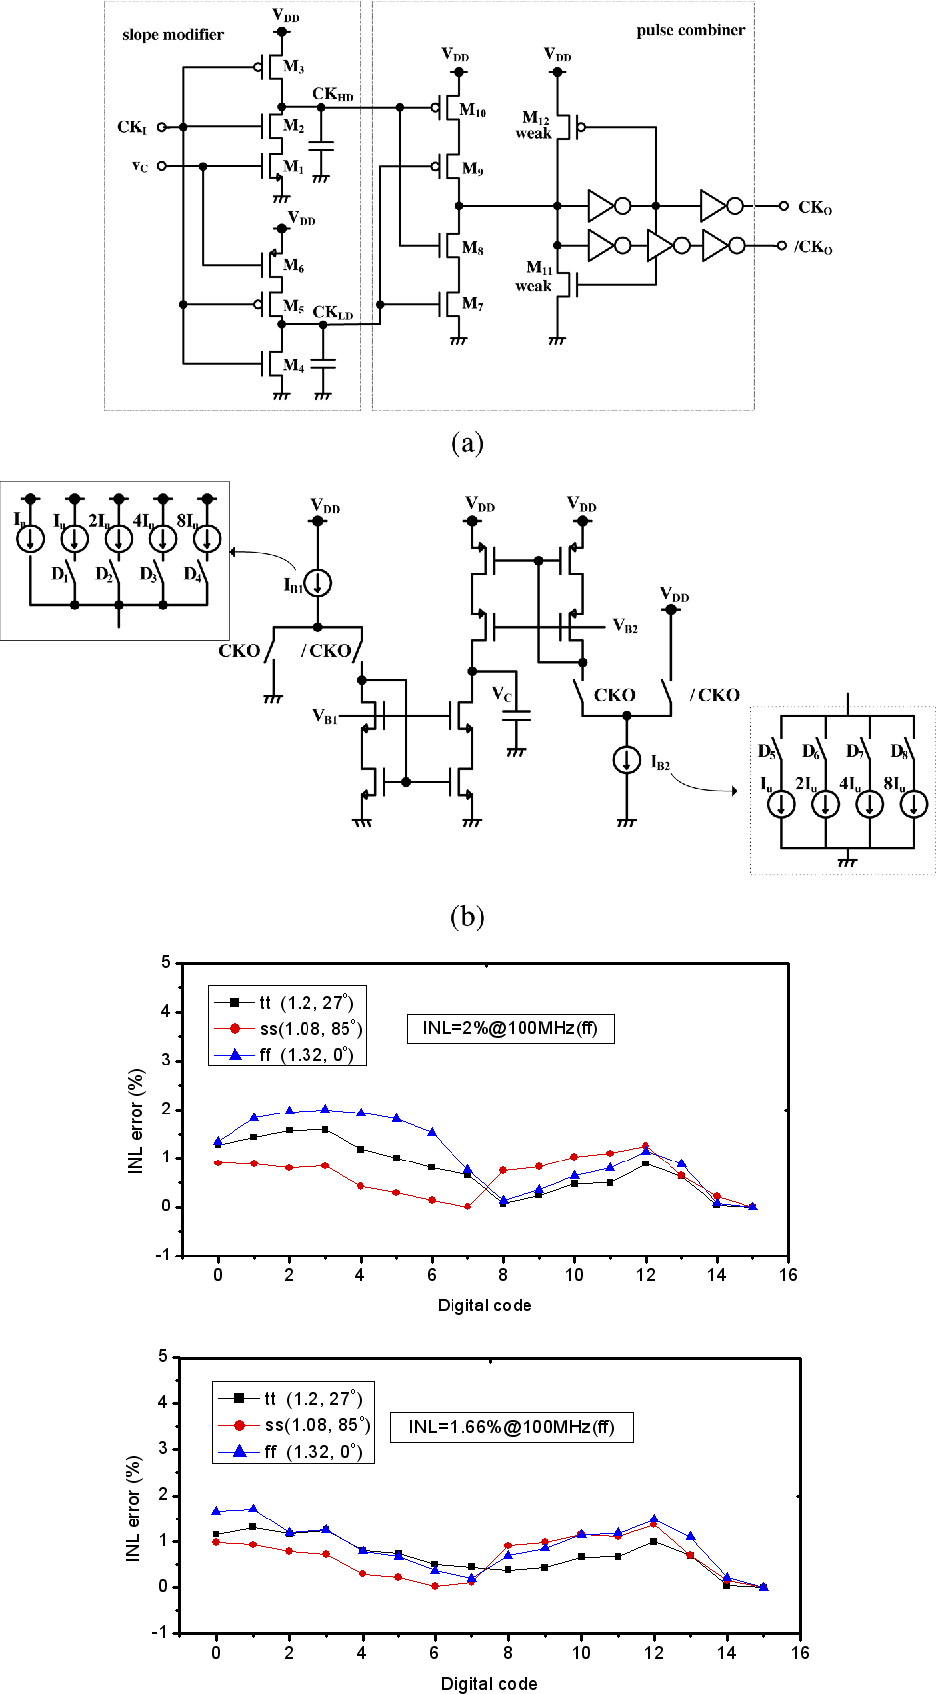 medium resolution of circuit diagrams of a slope modifier and pulse combiner